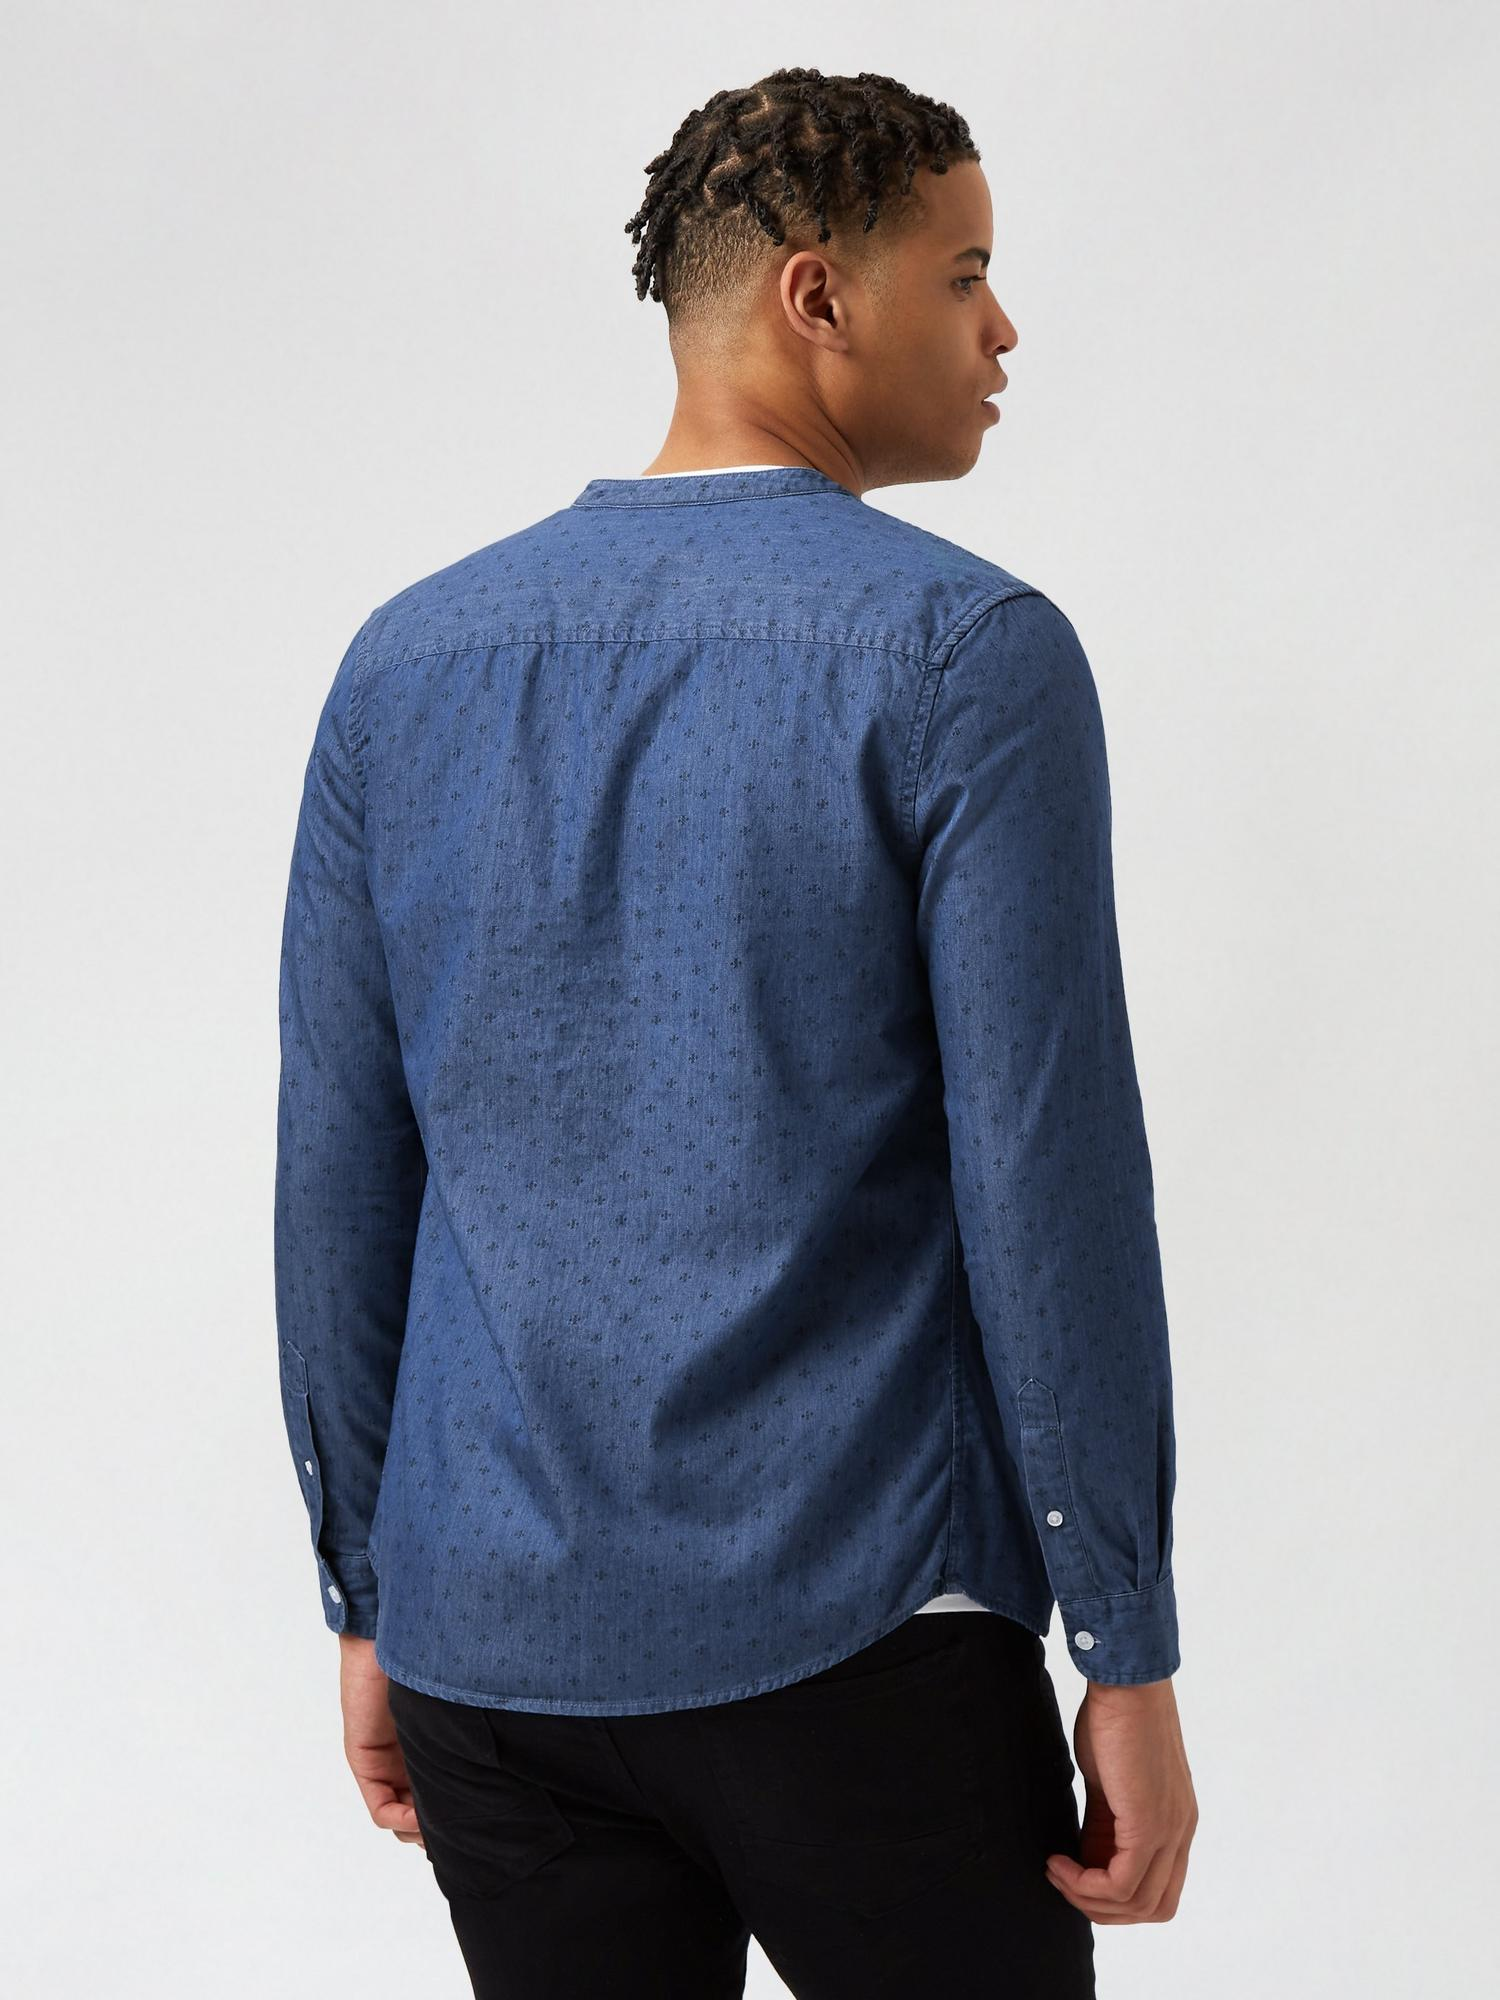 340 Denim Printed Shirt image number 3